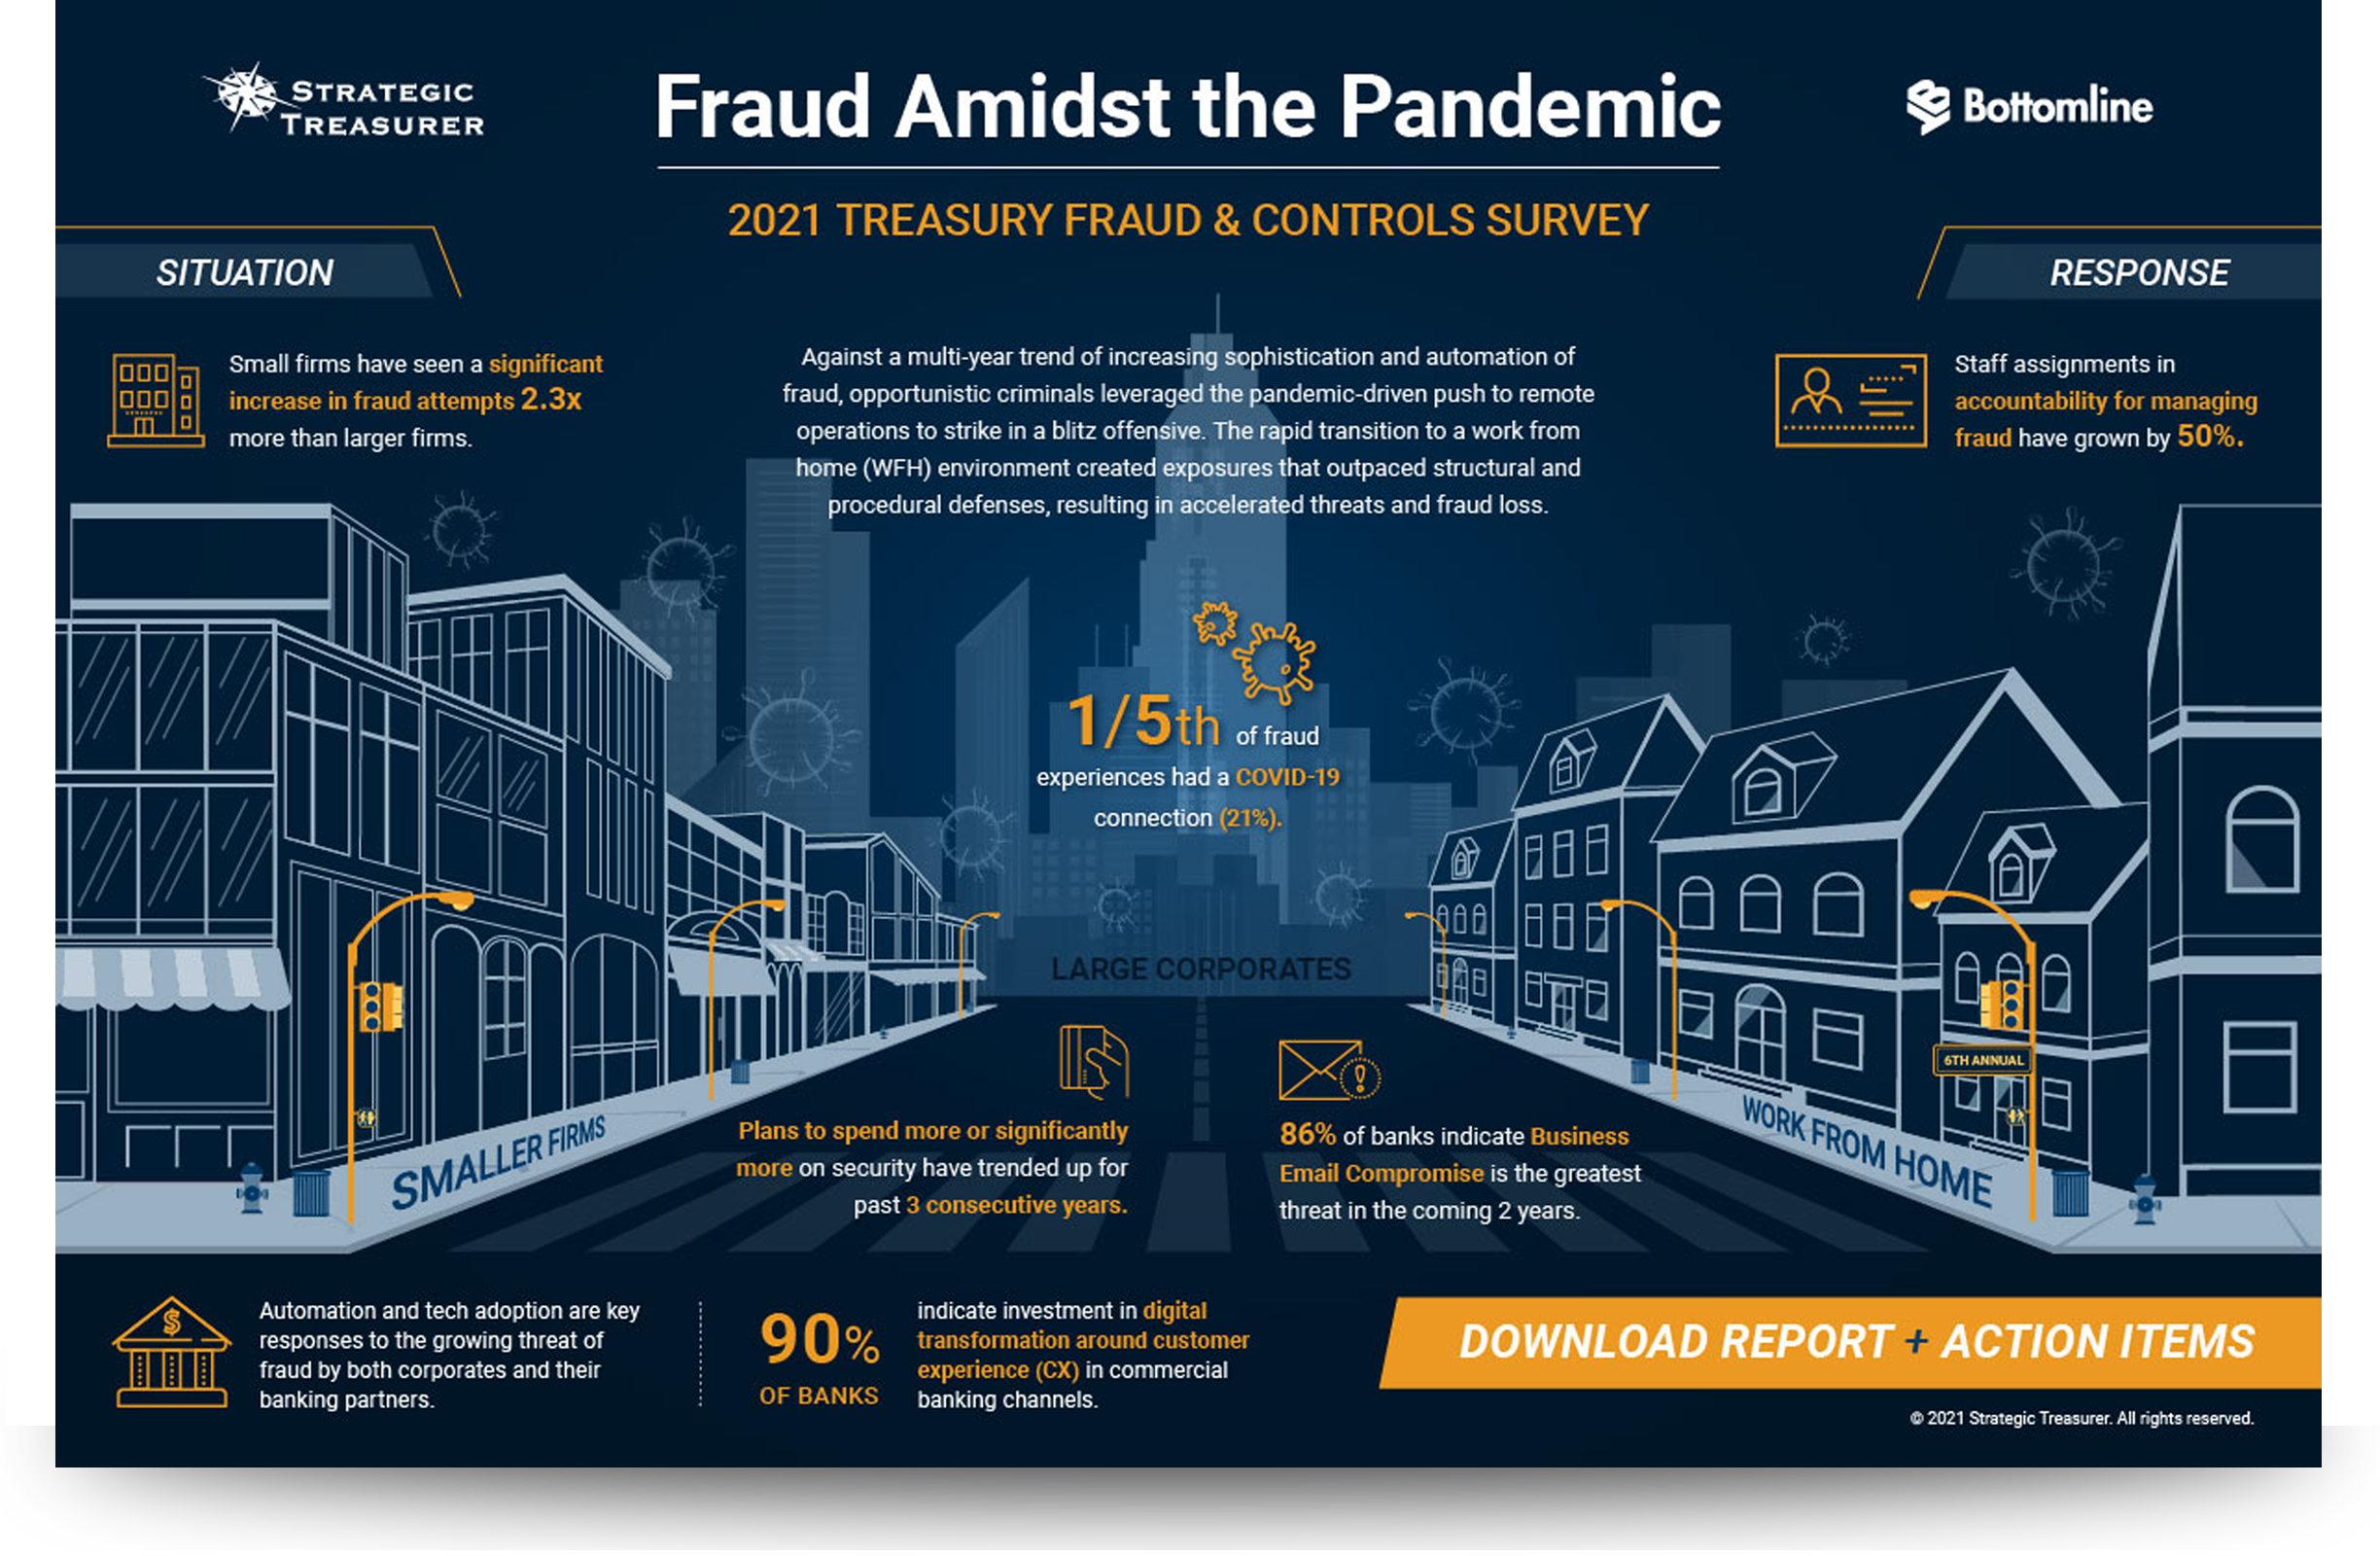 2021 Treasury Fraud & Controls Infographic